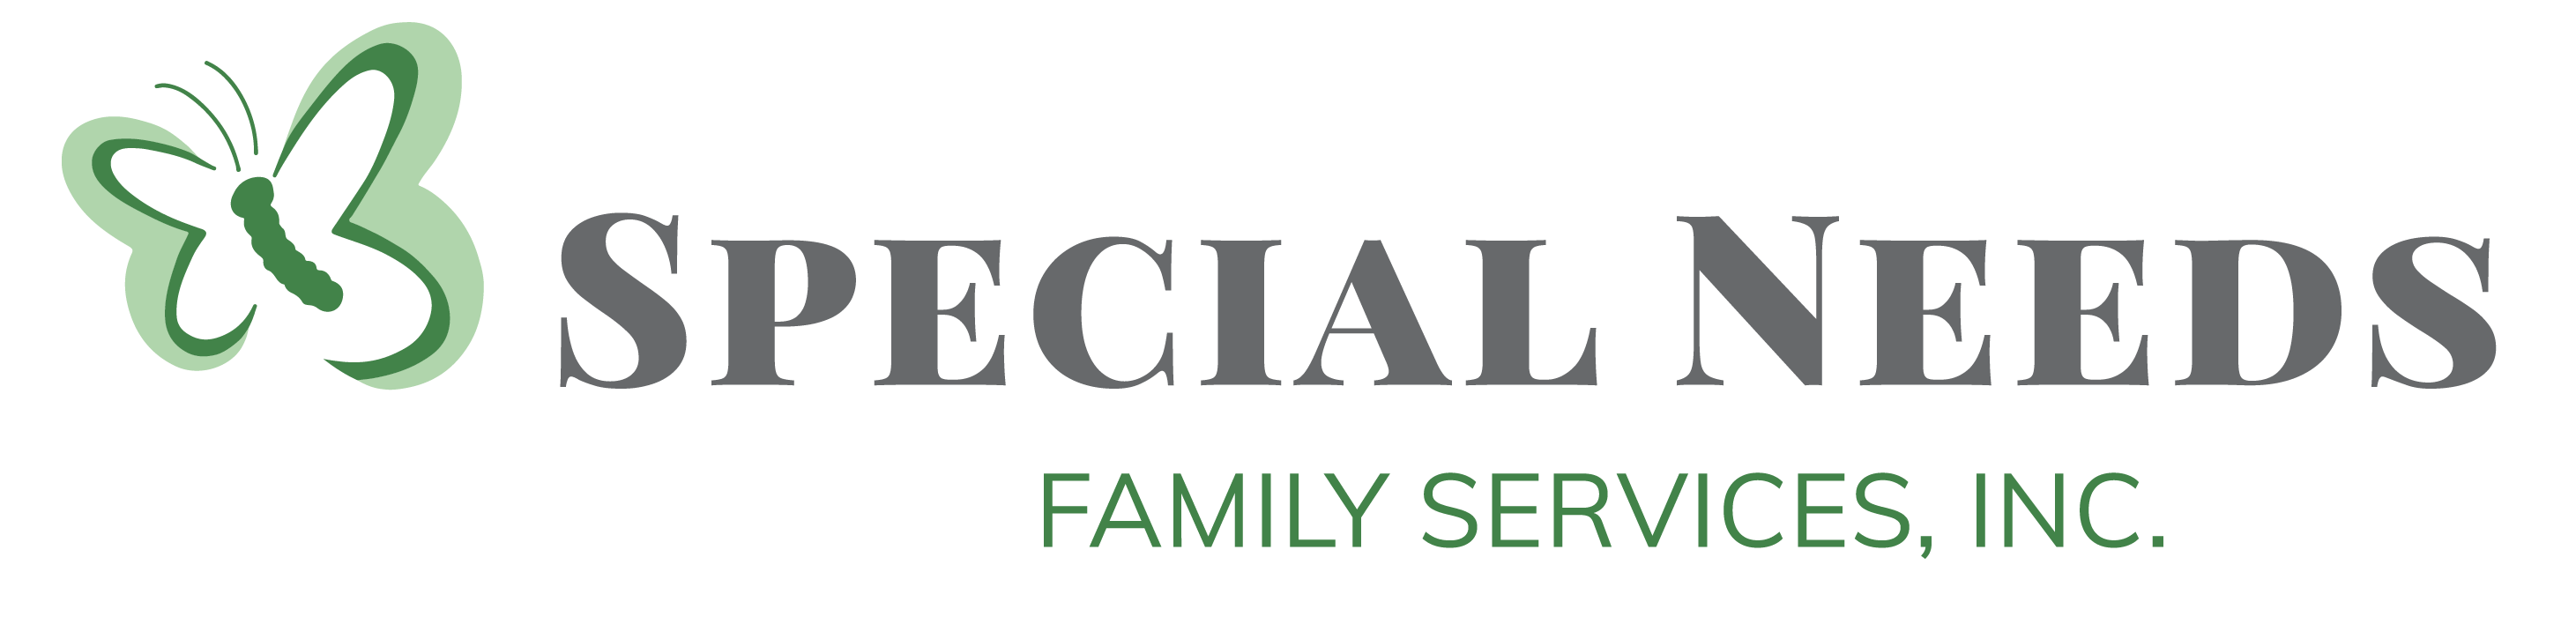 Special Needs Family Services